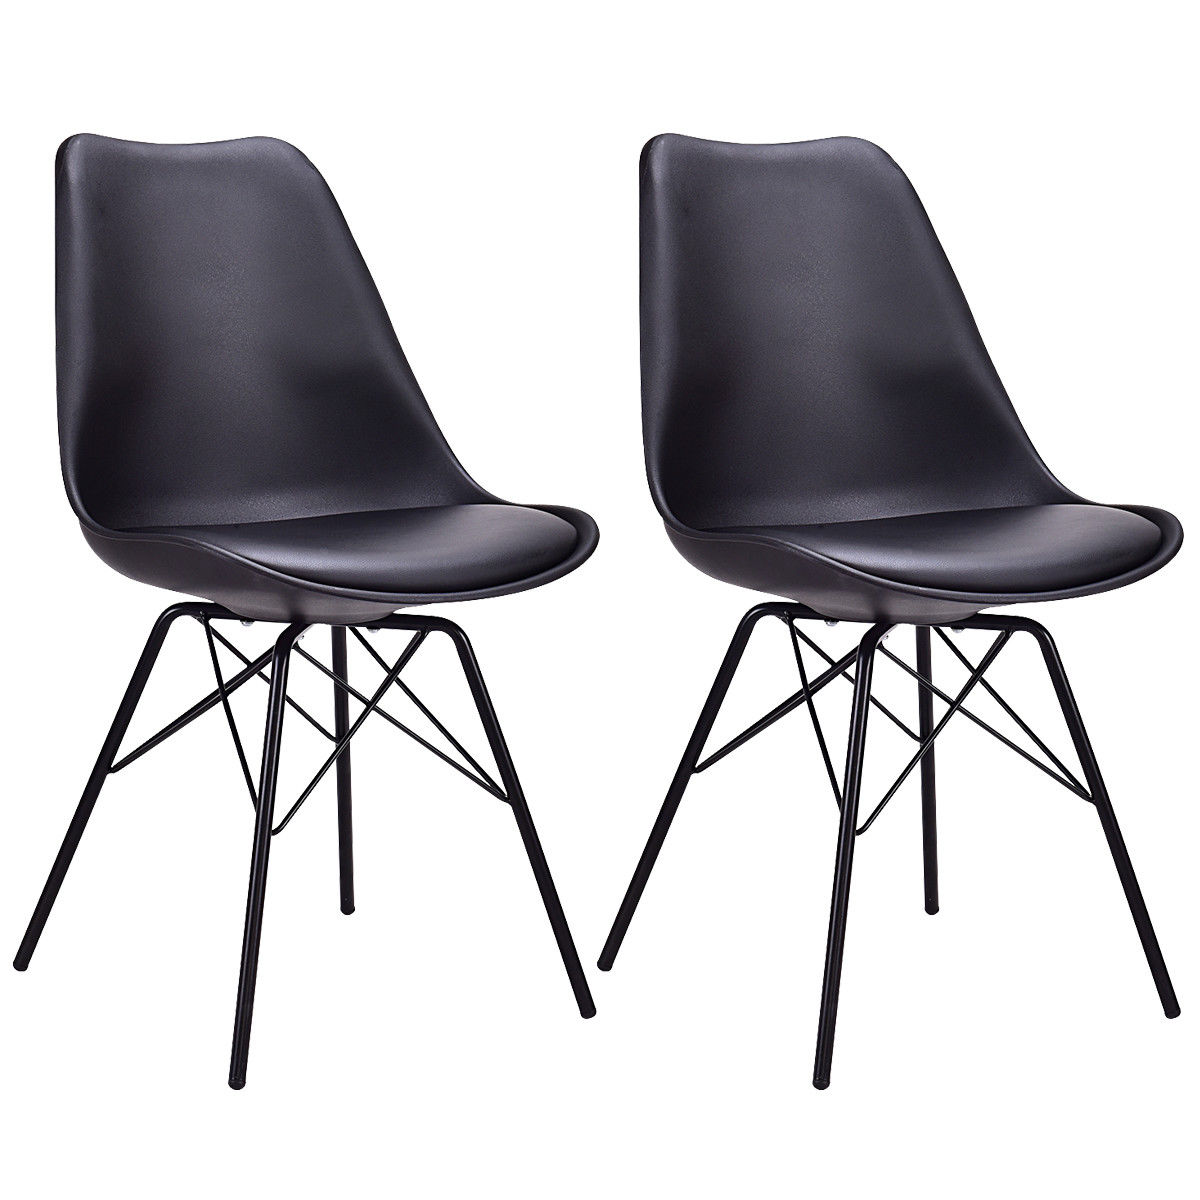 Giantex Set of 2pcs Dining Side Chair Upholstered Armless with Padded Seat Metal Legs Black Modern Home Furniture HW56508BK helix dining chair anti black gold set of 2